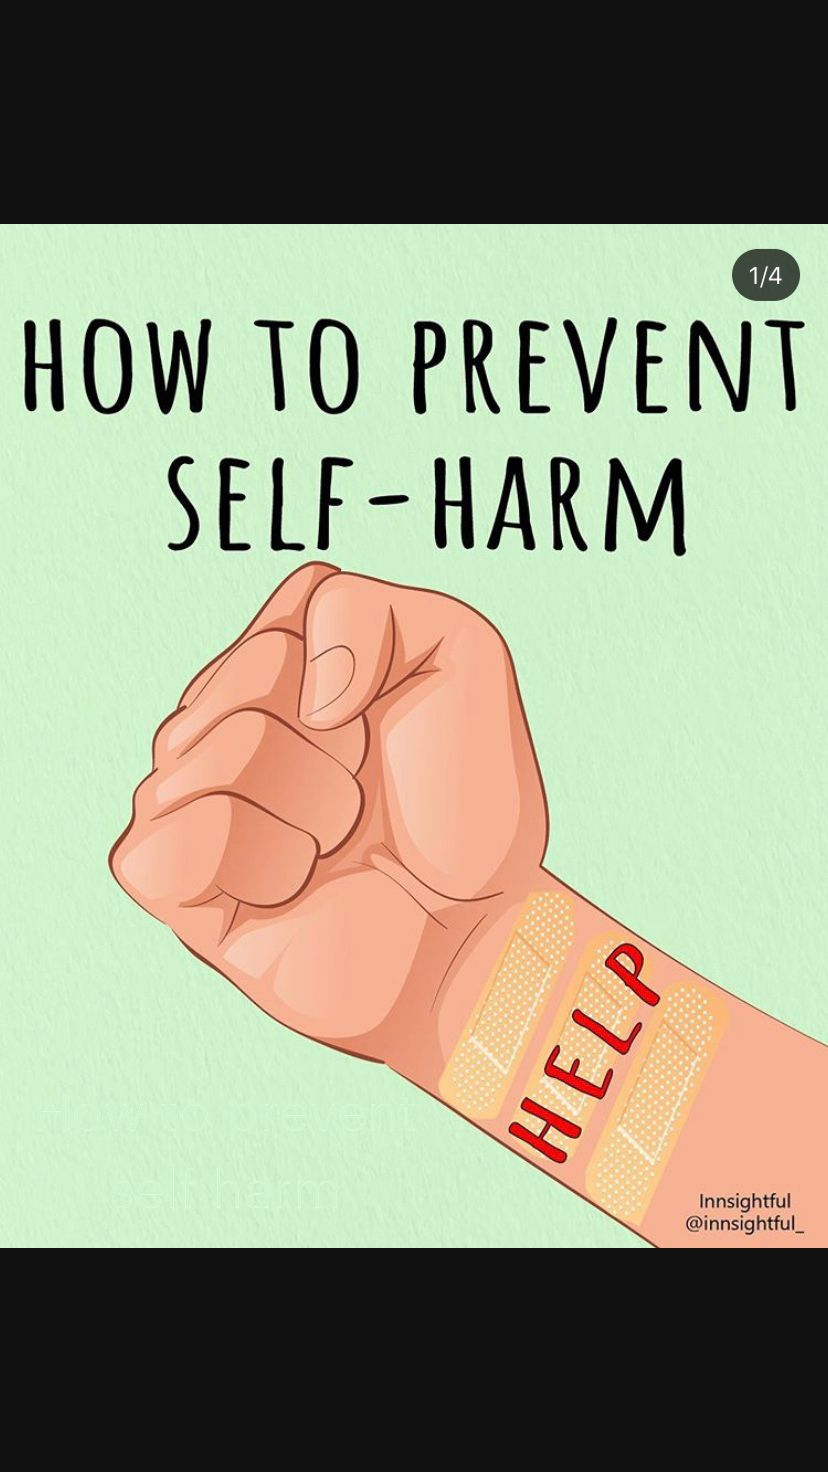 How to prevent self harm